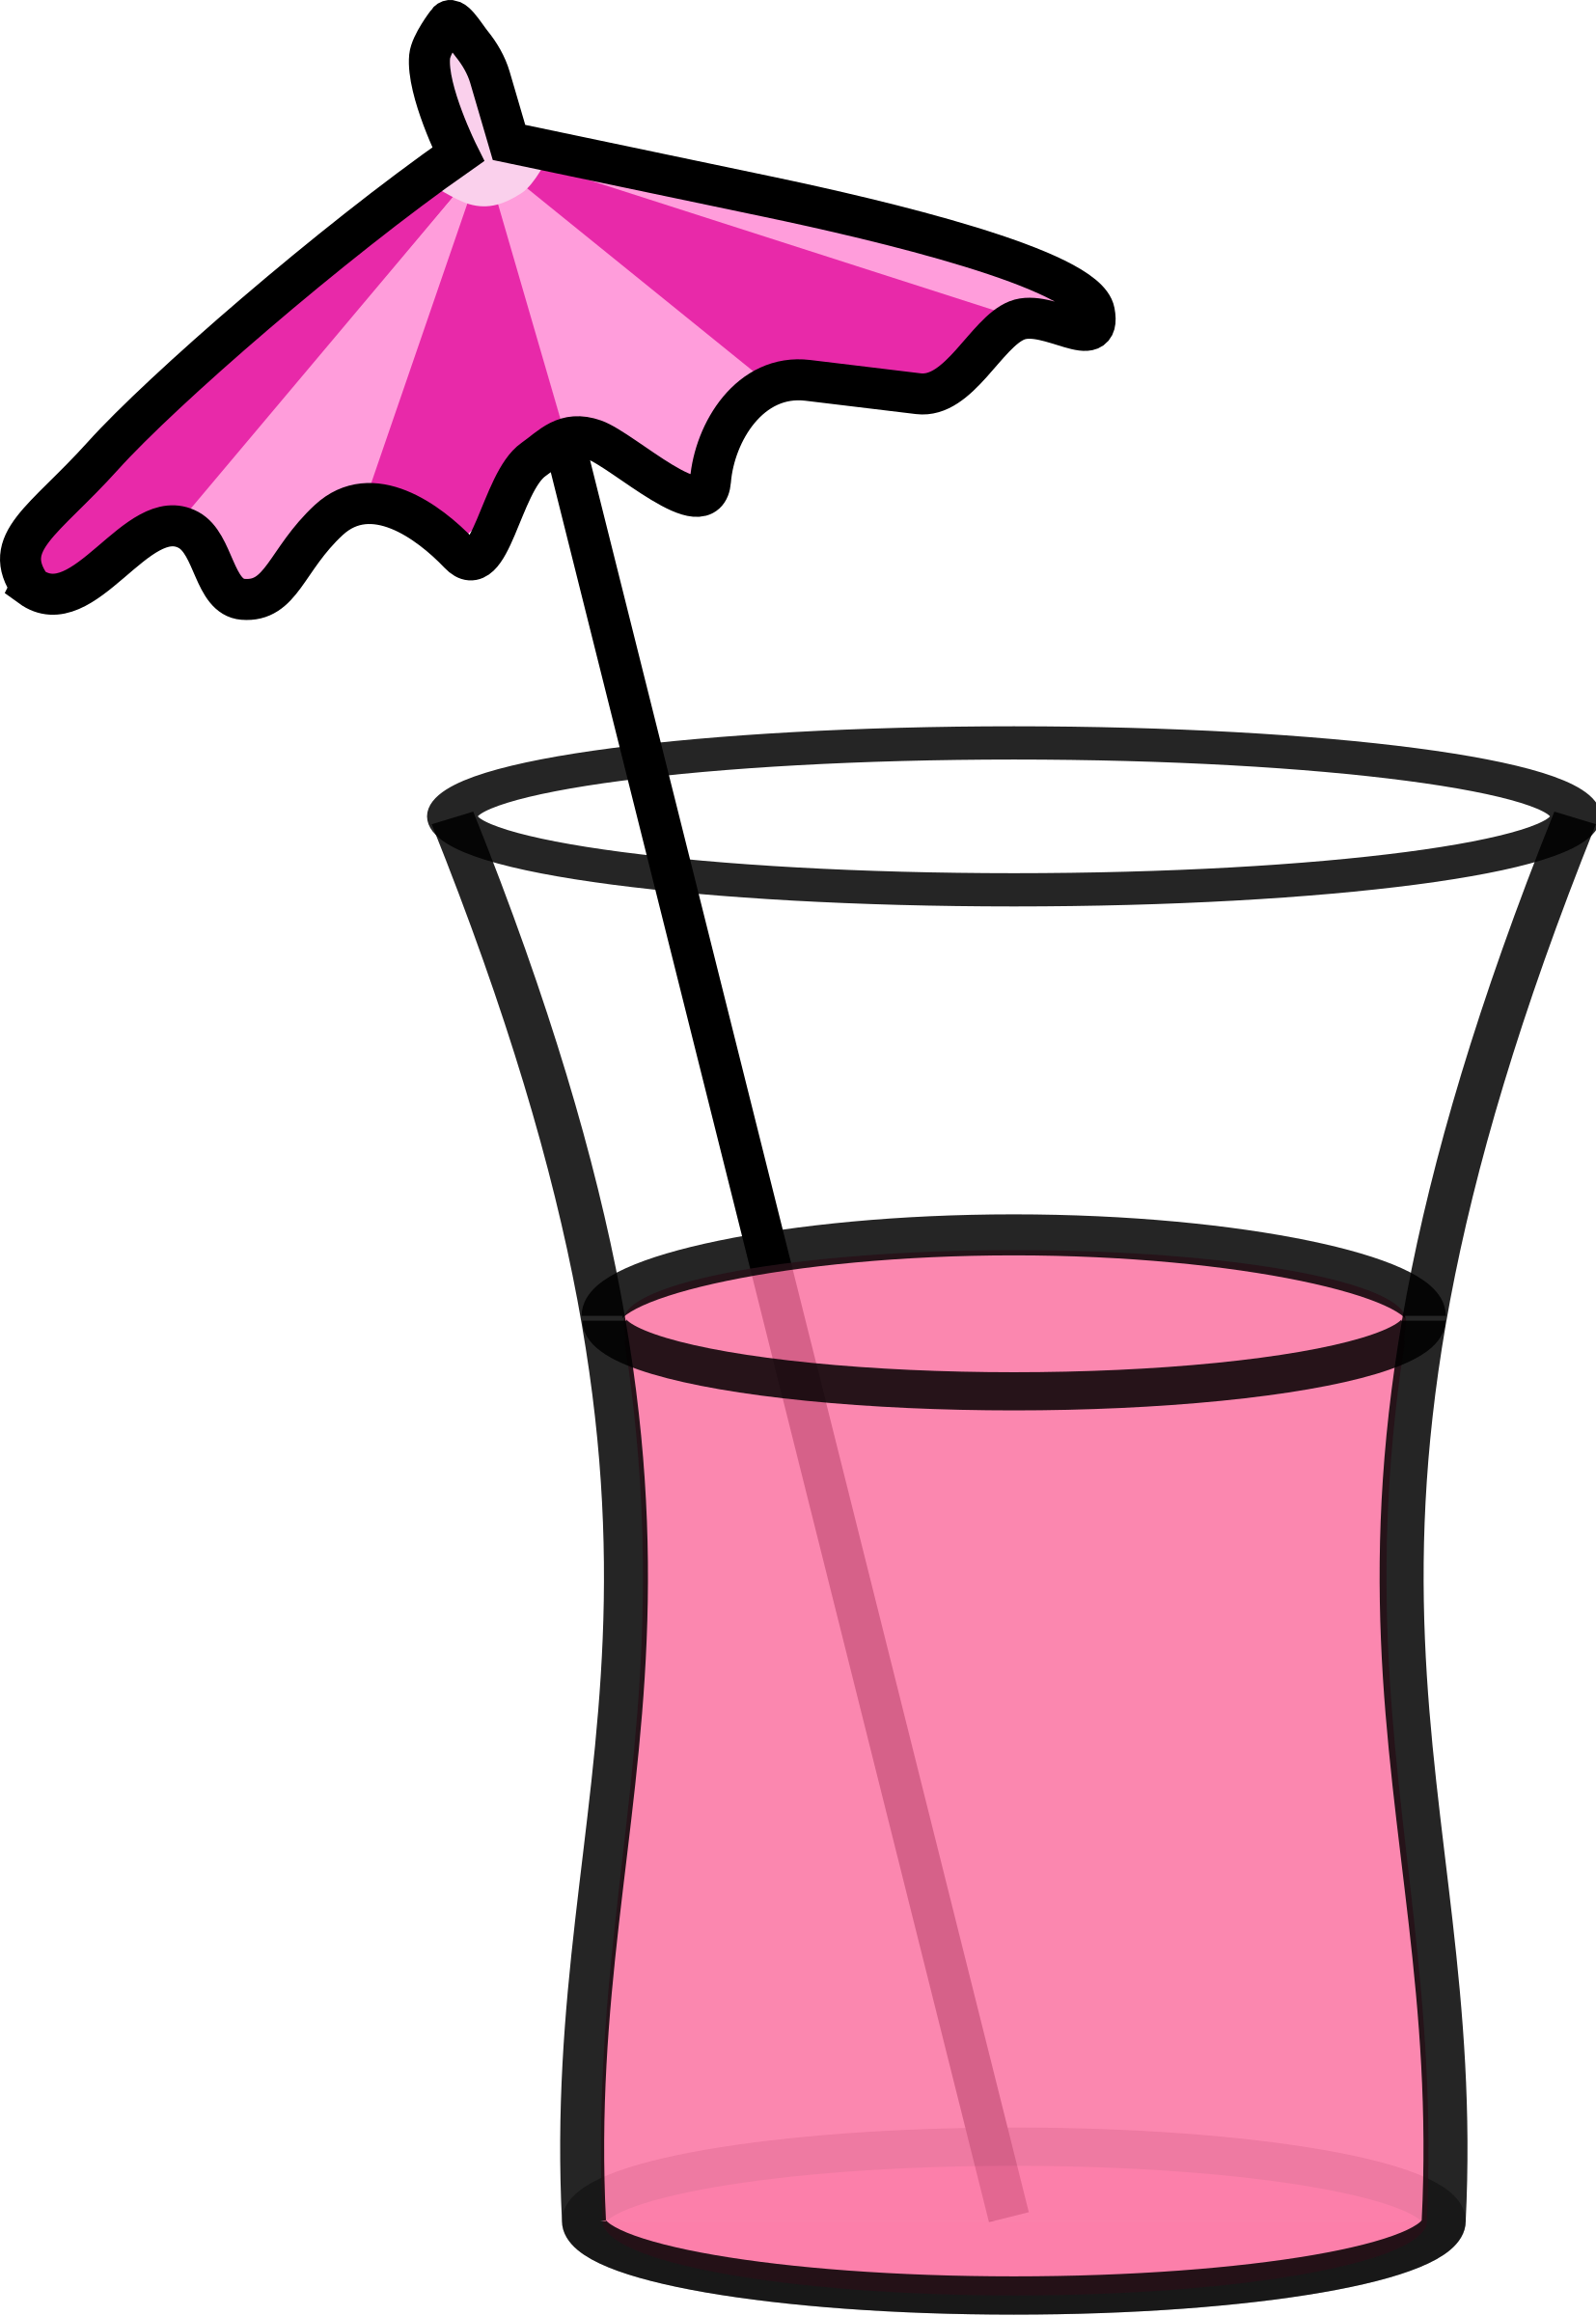 Big image png. Cocktail clipart pink cocktail